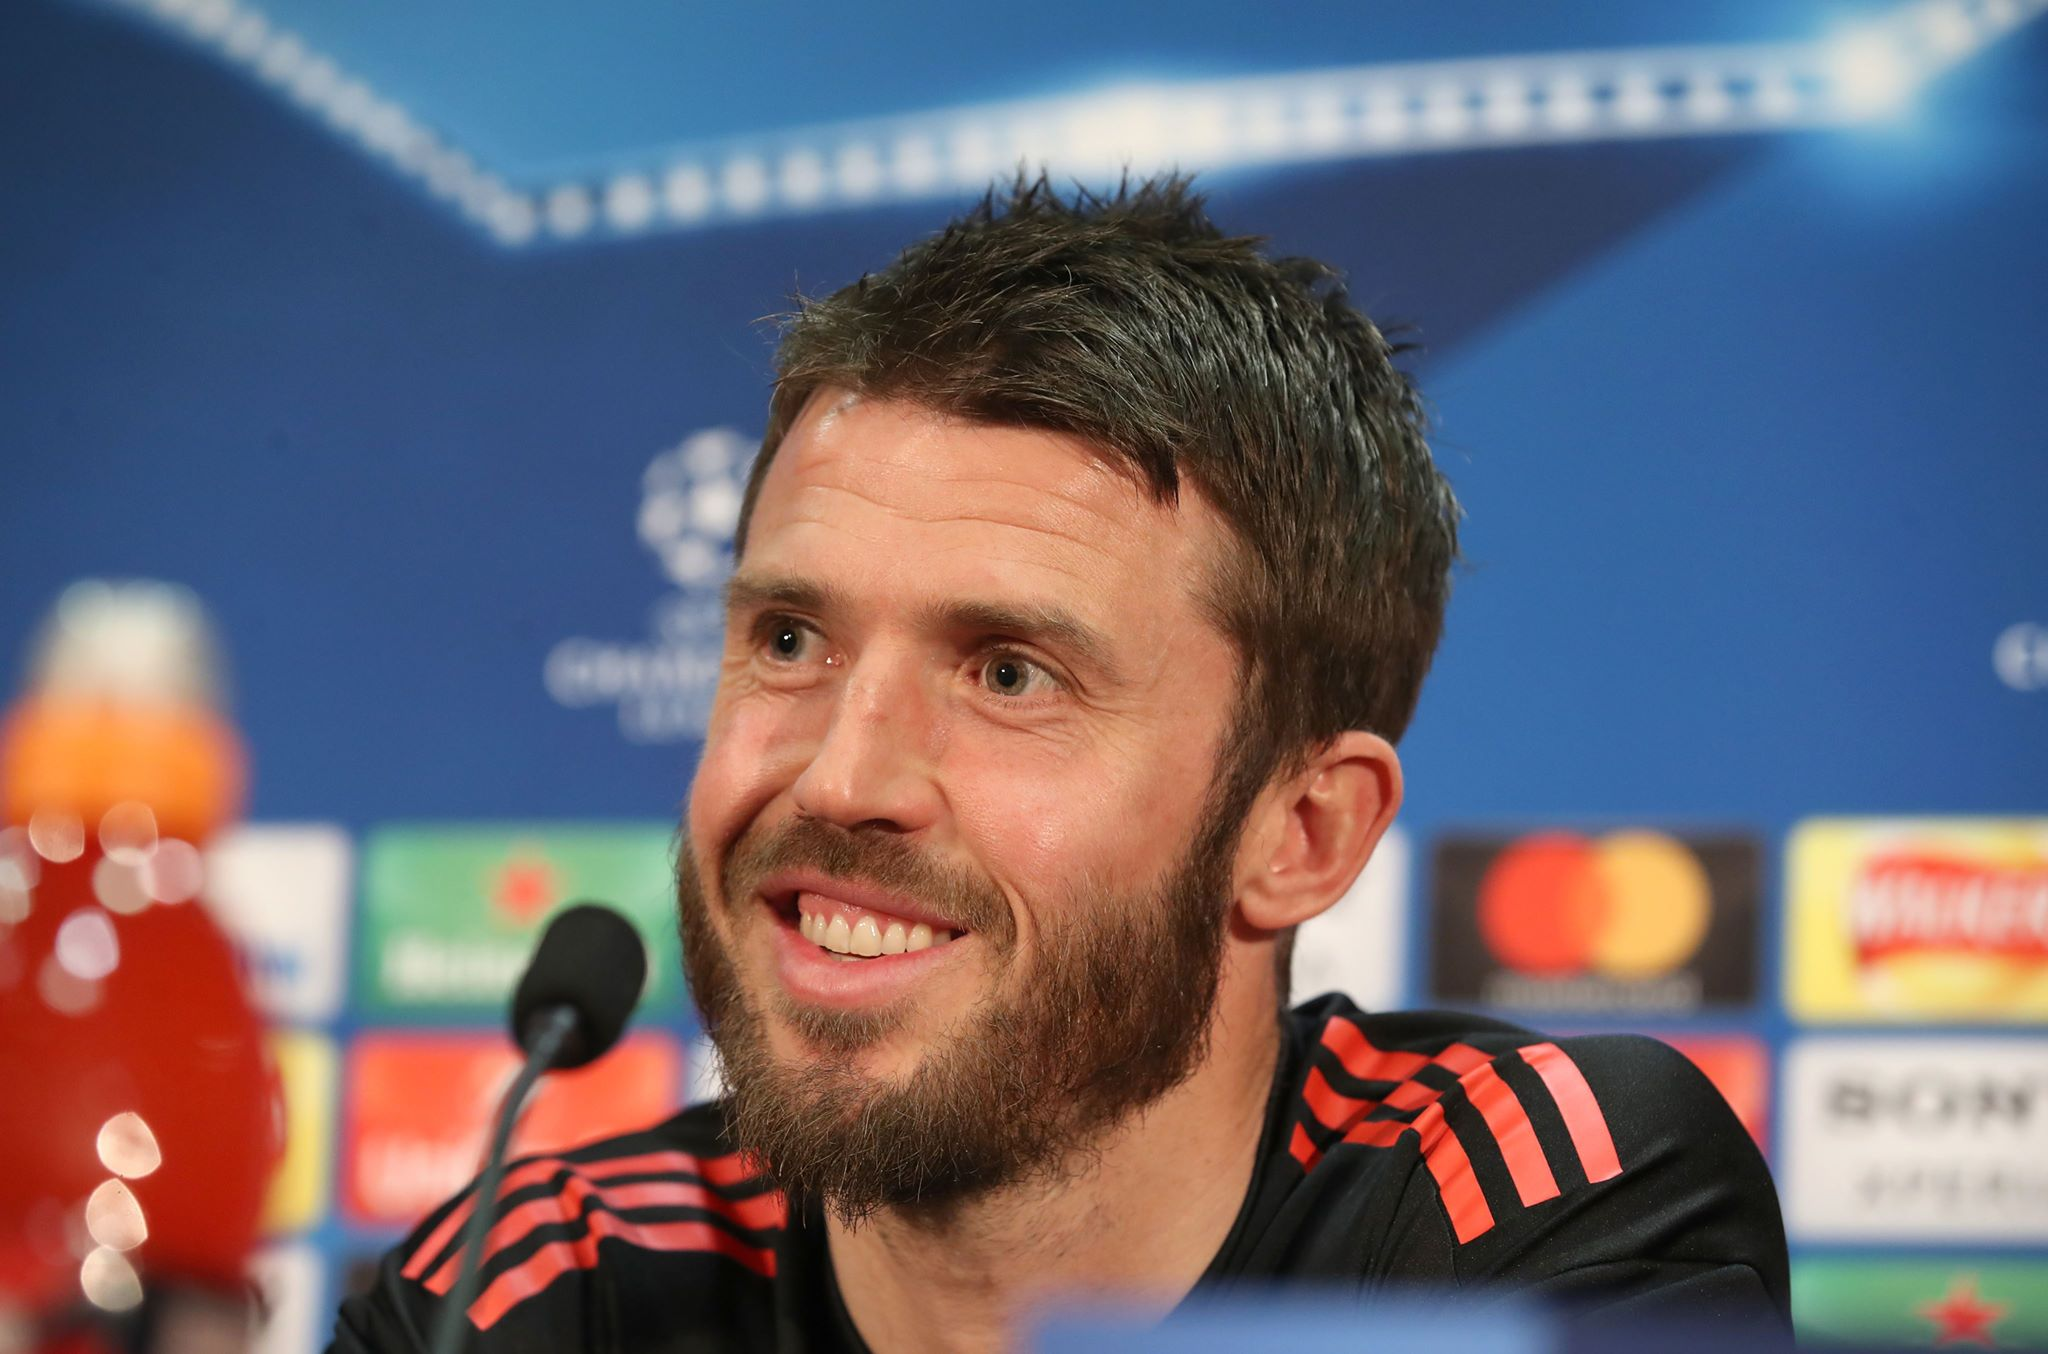 Carrick is set to end his playing career this summer. Image: PA Images.